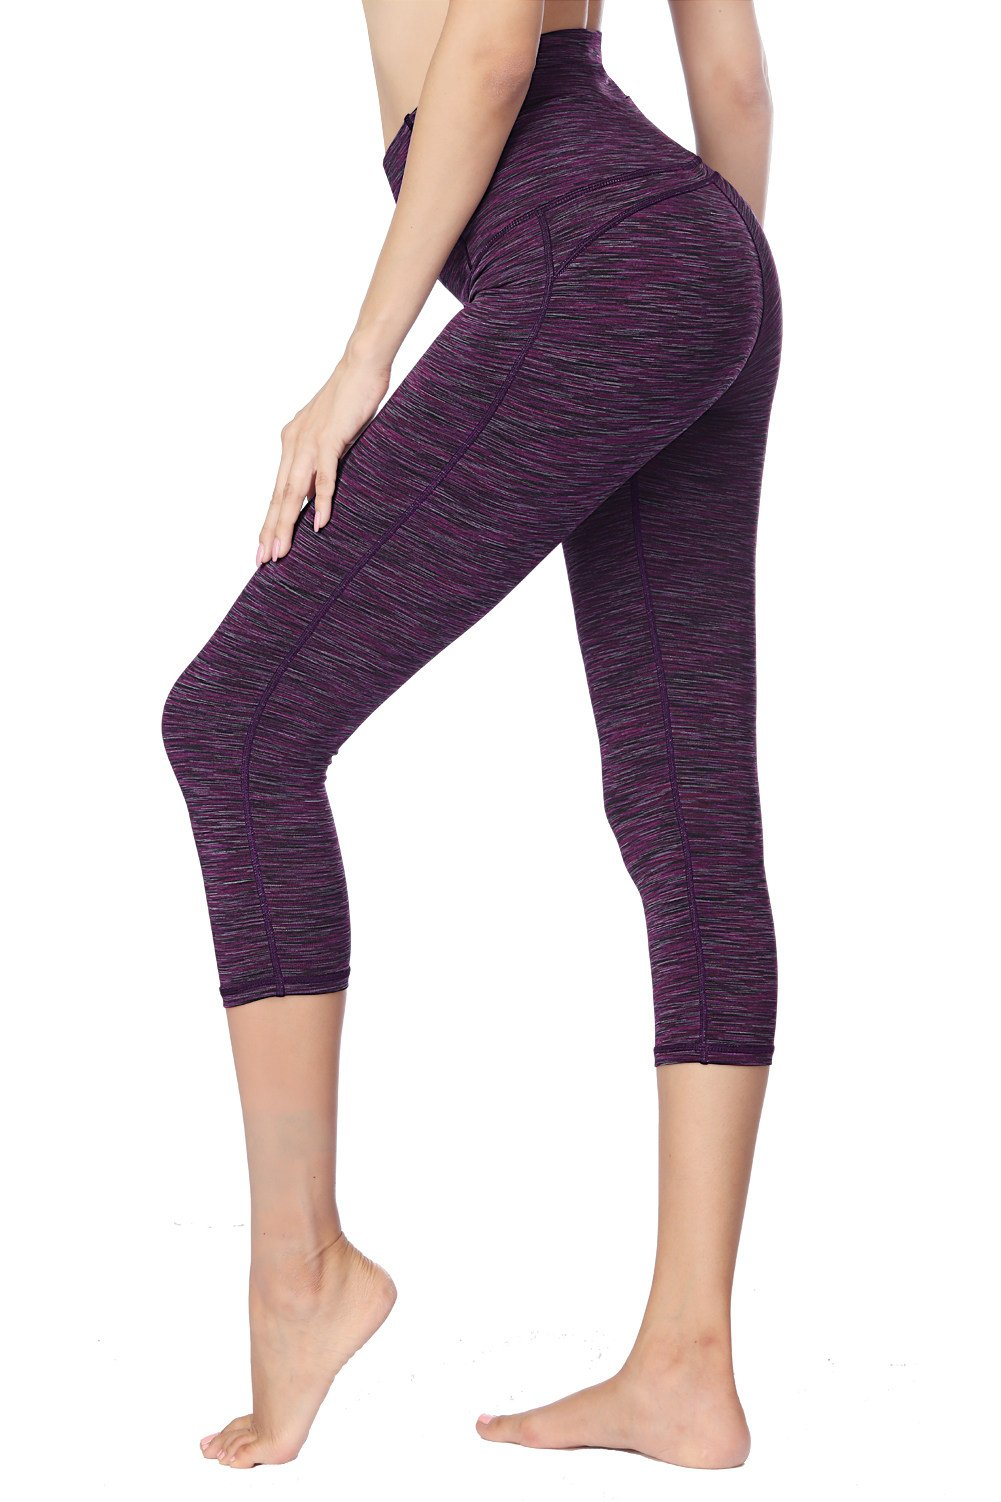 Dragon Fit Compression Yoga Pants Power Stretch Workout Leggings with High Waist Tummy Control (Large, Capri-Purple)